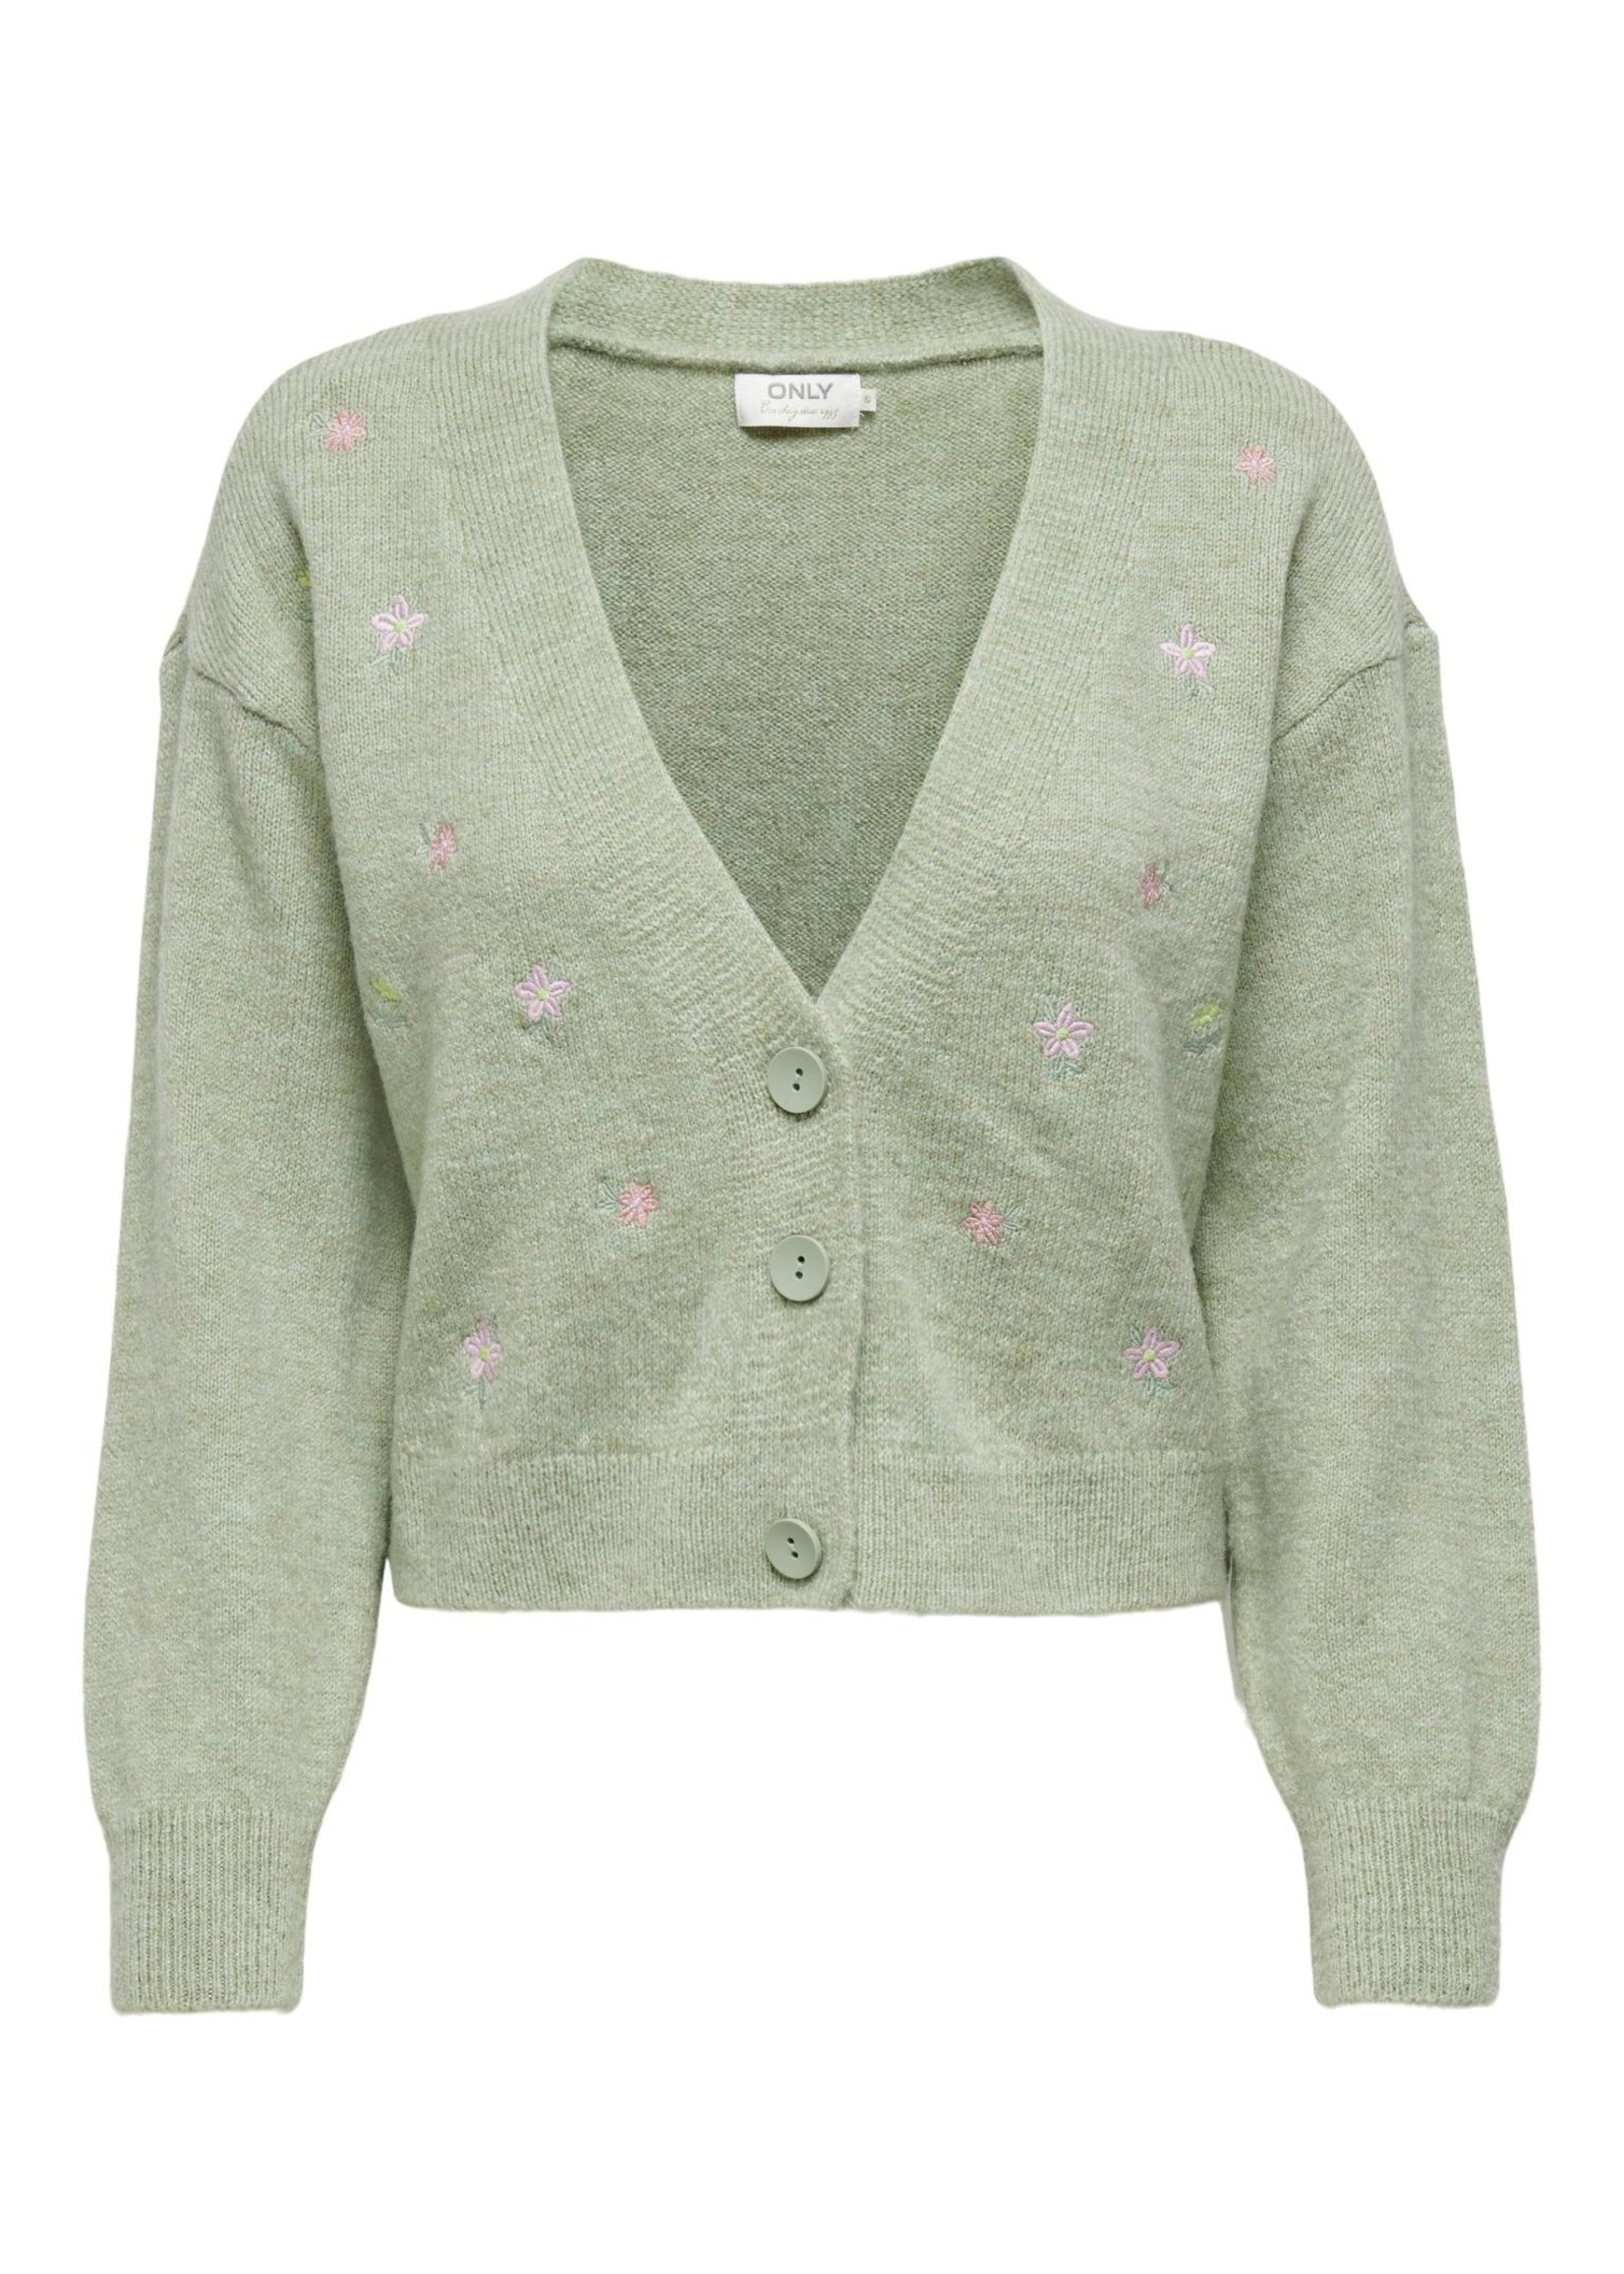 ONLY ANNIE L/S CARDIGAN KNT Pumice Stone W. MELANGE AND EMBROIDERY ARTWORK